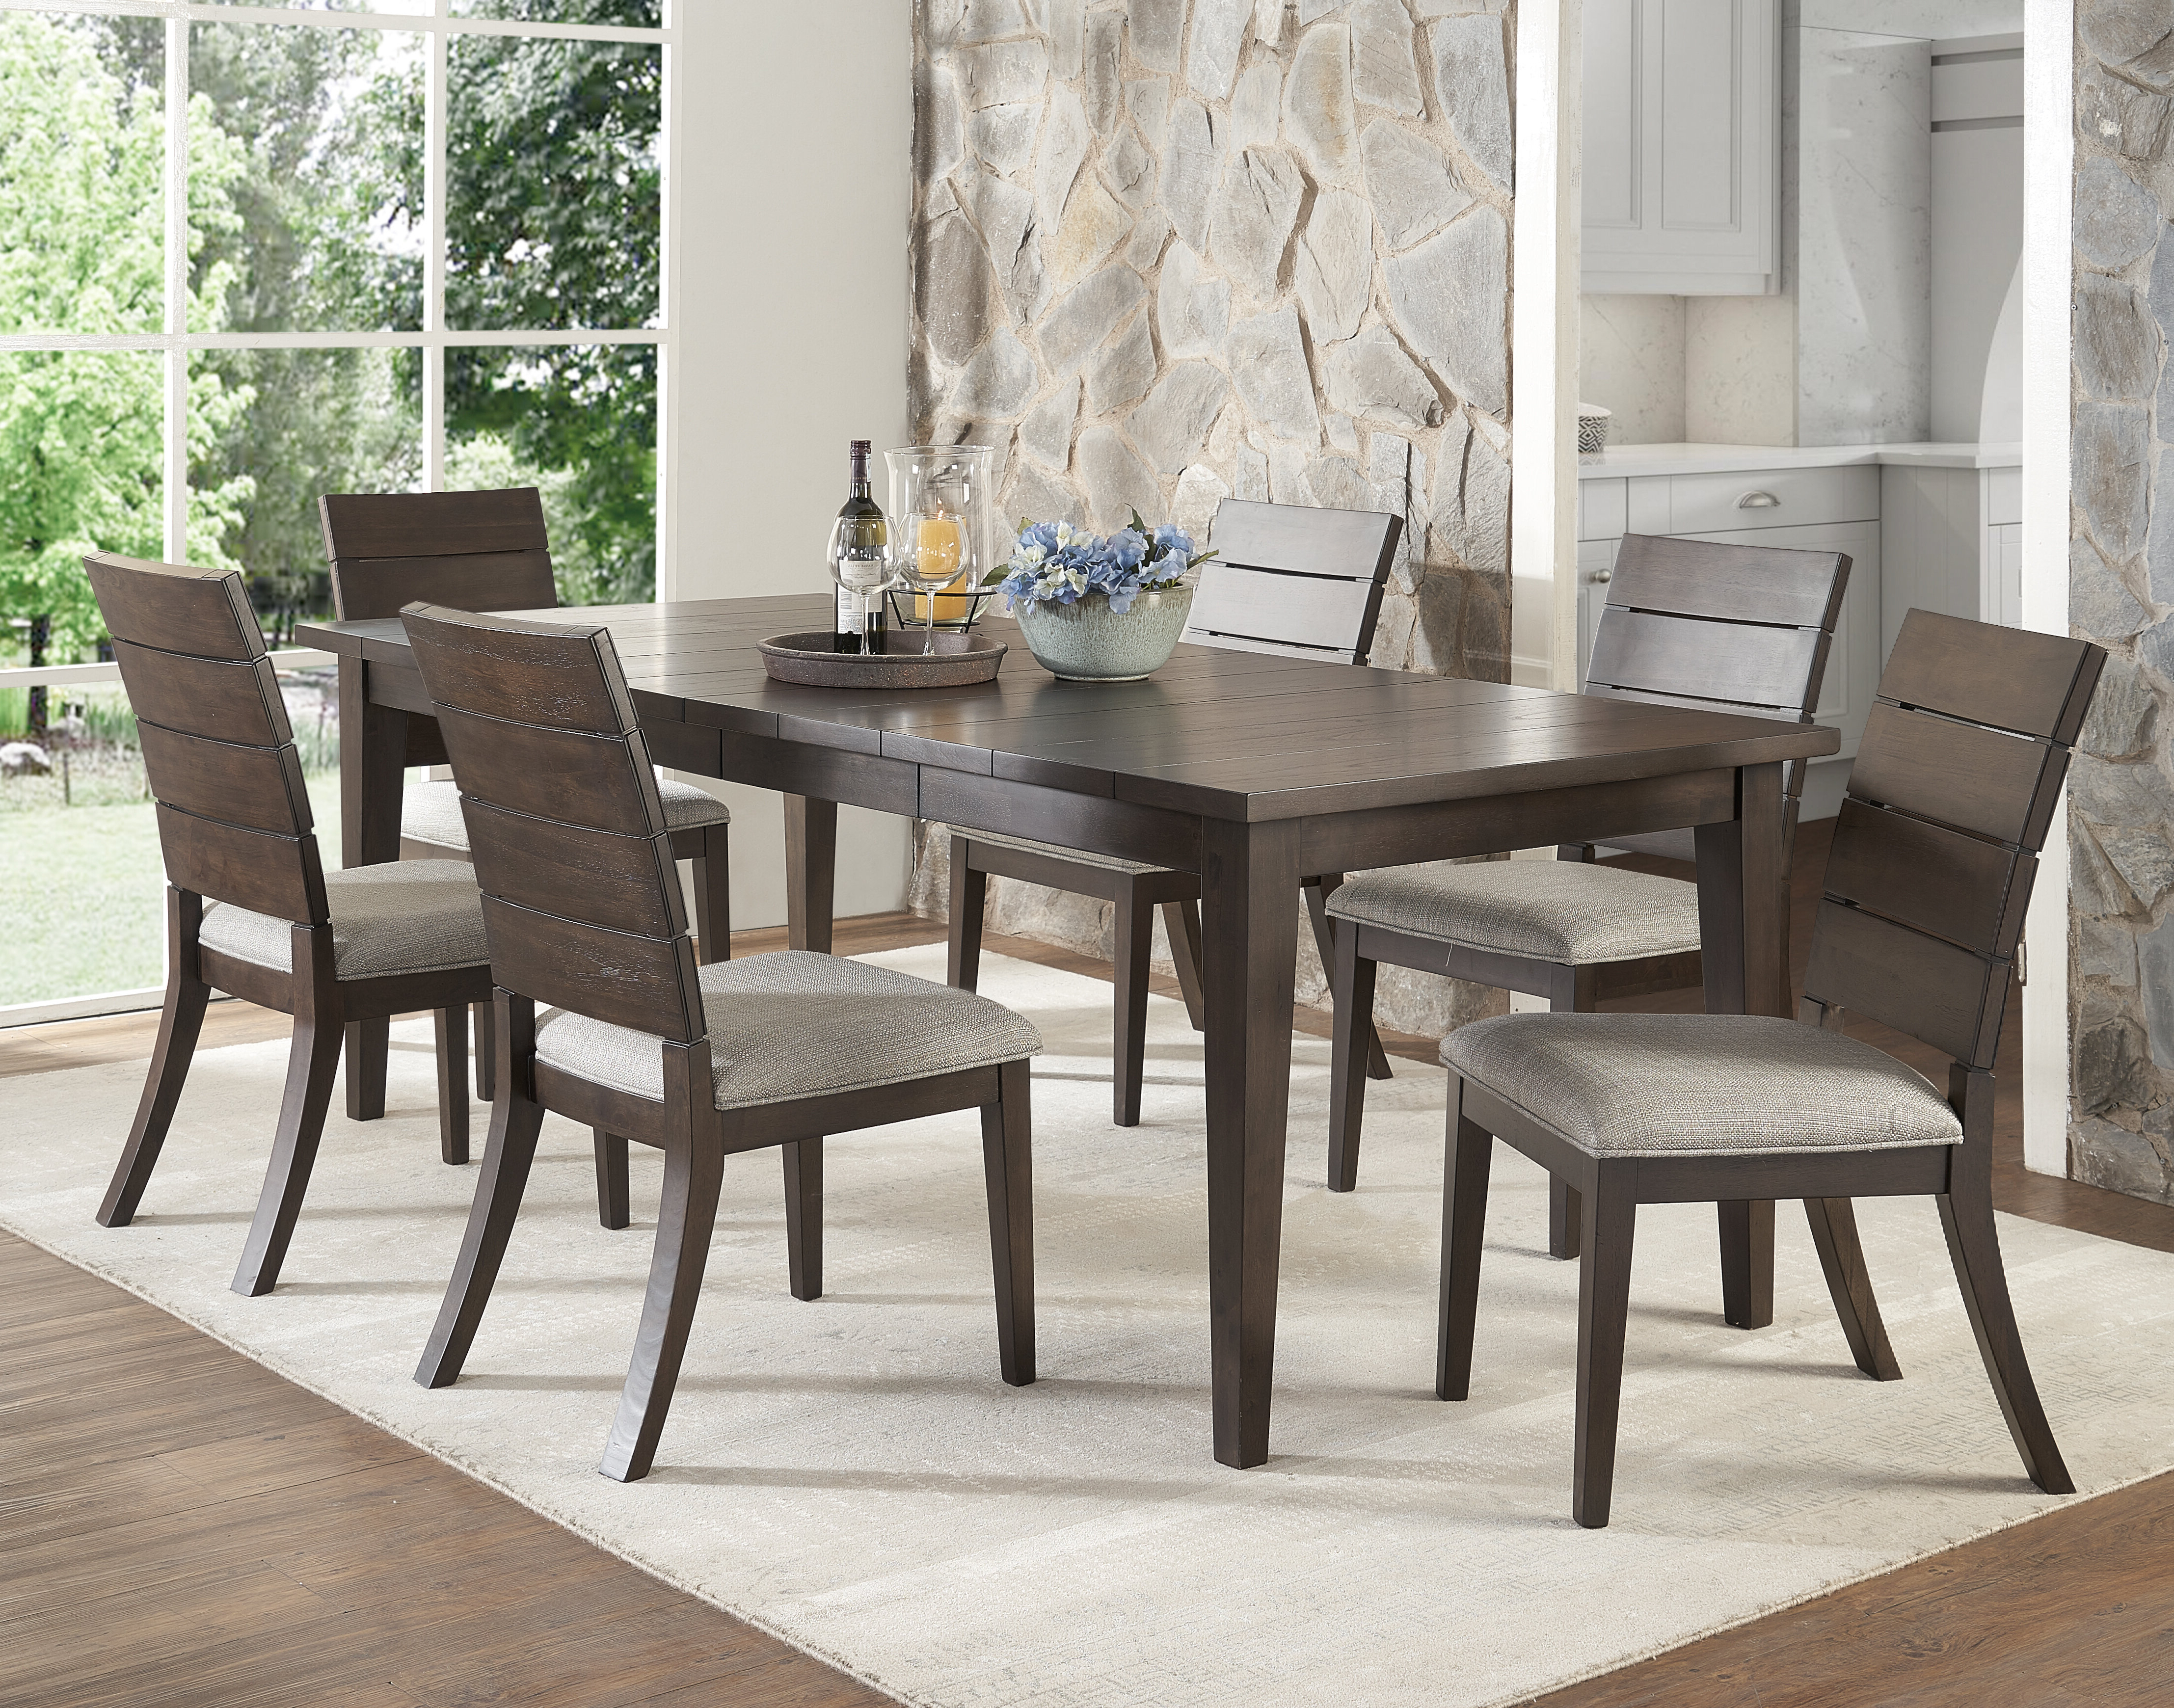 Wooton 7 Piece Extendable Dining Set With Regard To Current Hanska Wooden 5 Piece Counter Height Dining Table Sets (Set Of 5) (View 20 of 20)